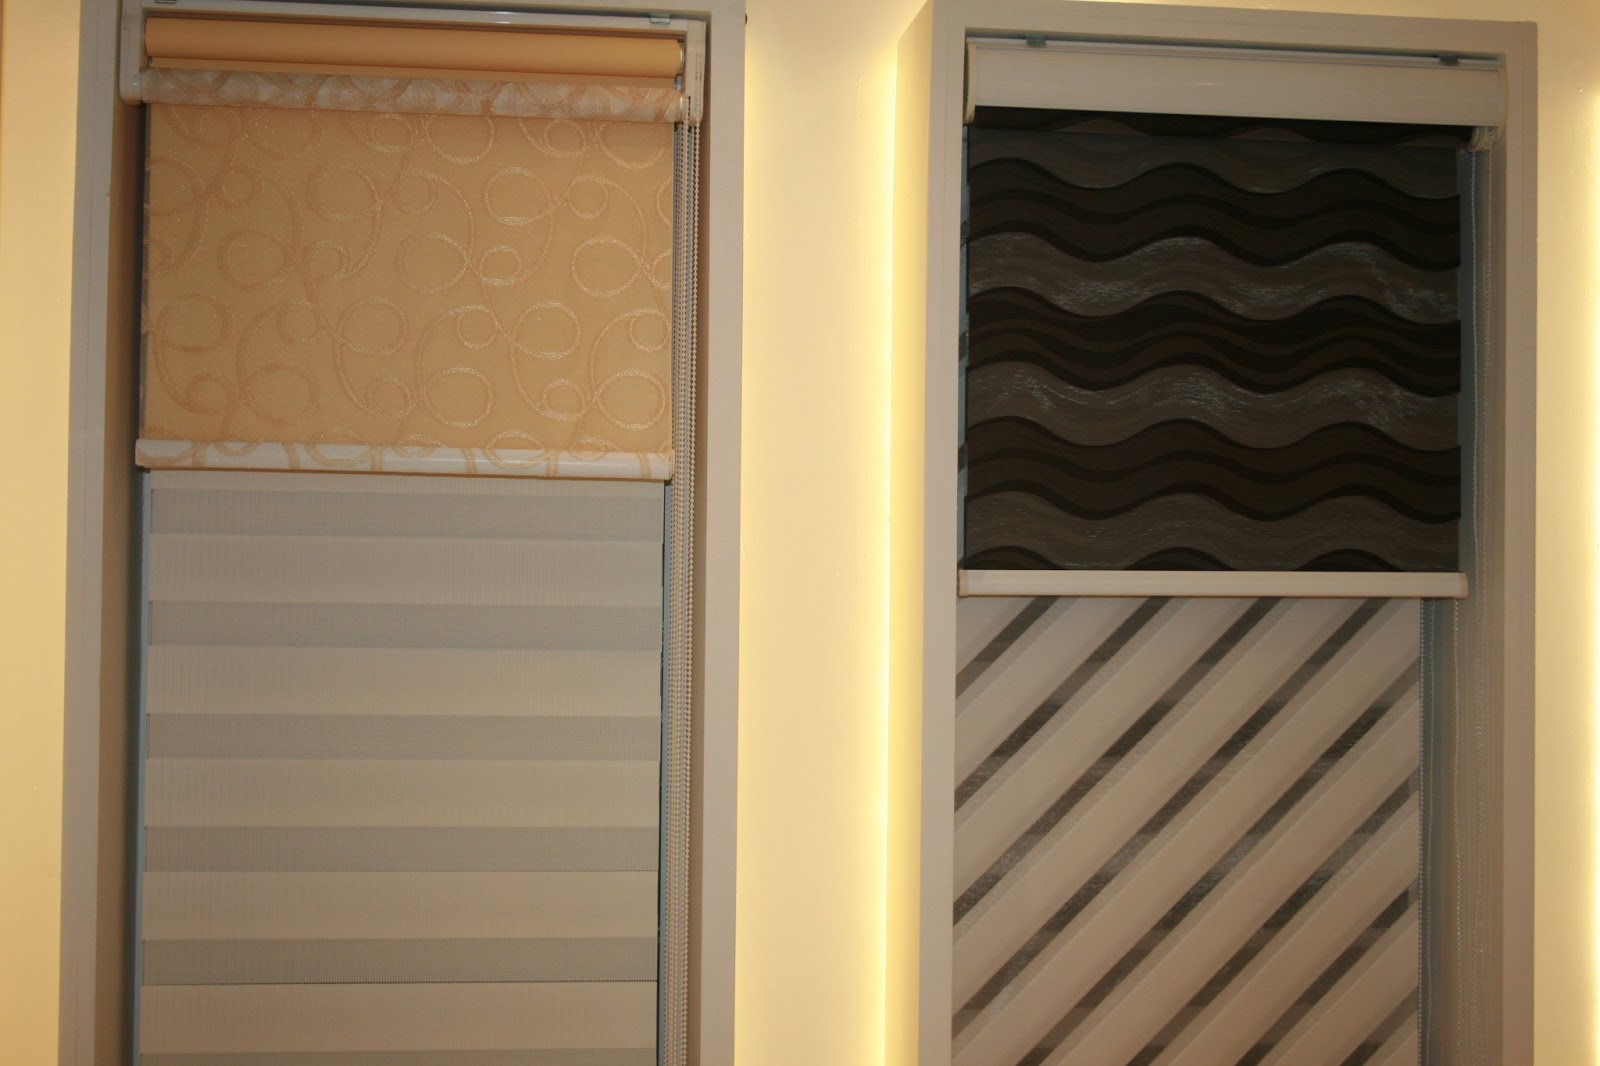 Lauresse Curtain Curtain Systems Zebra Blinds Malaysia